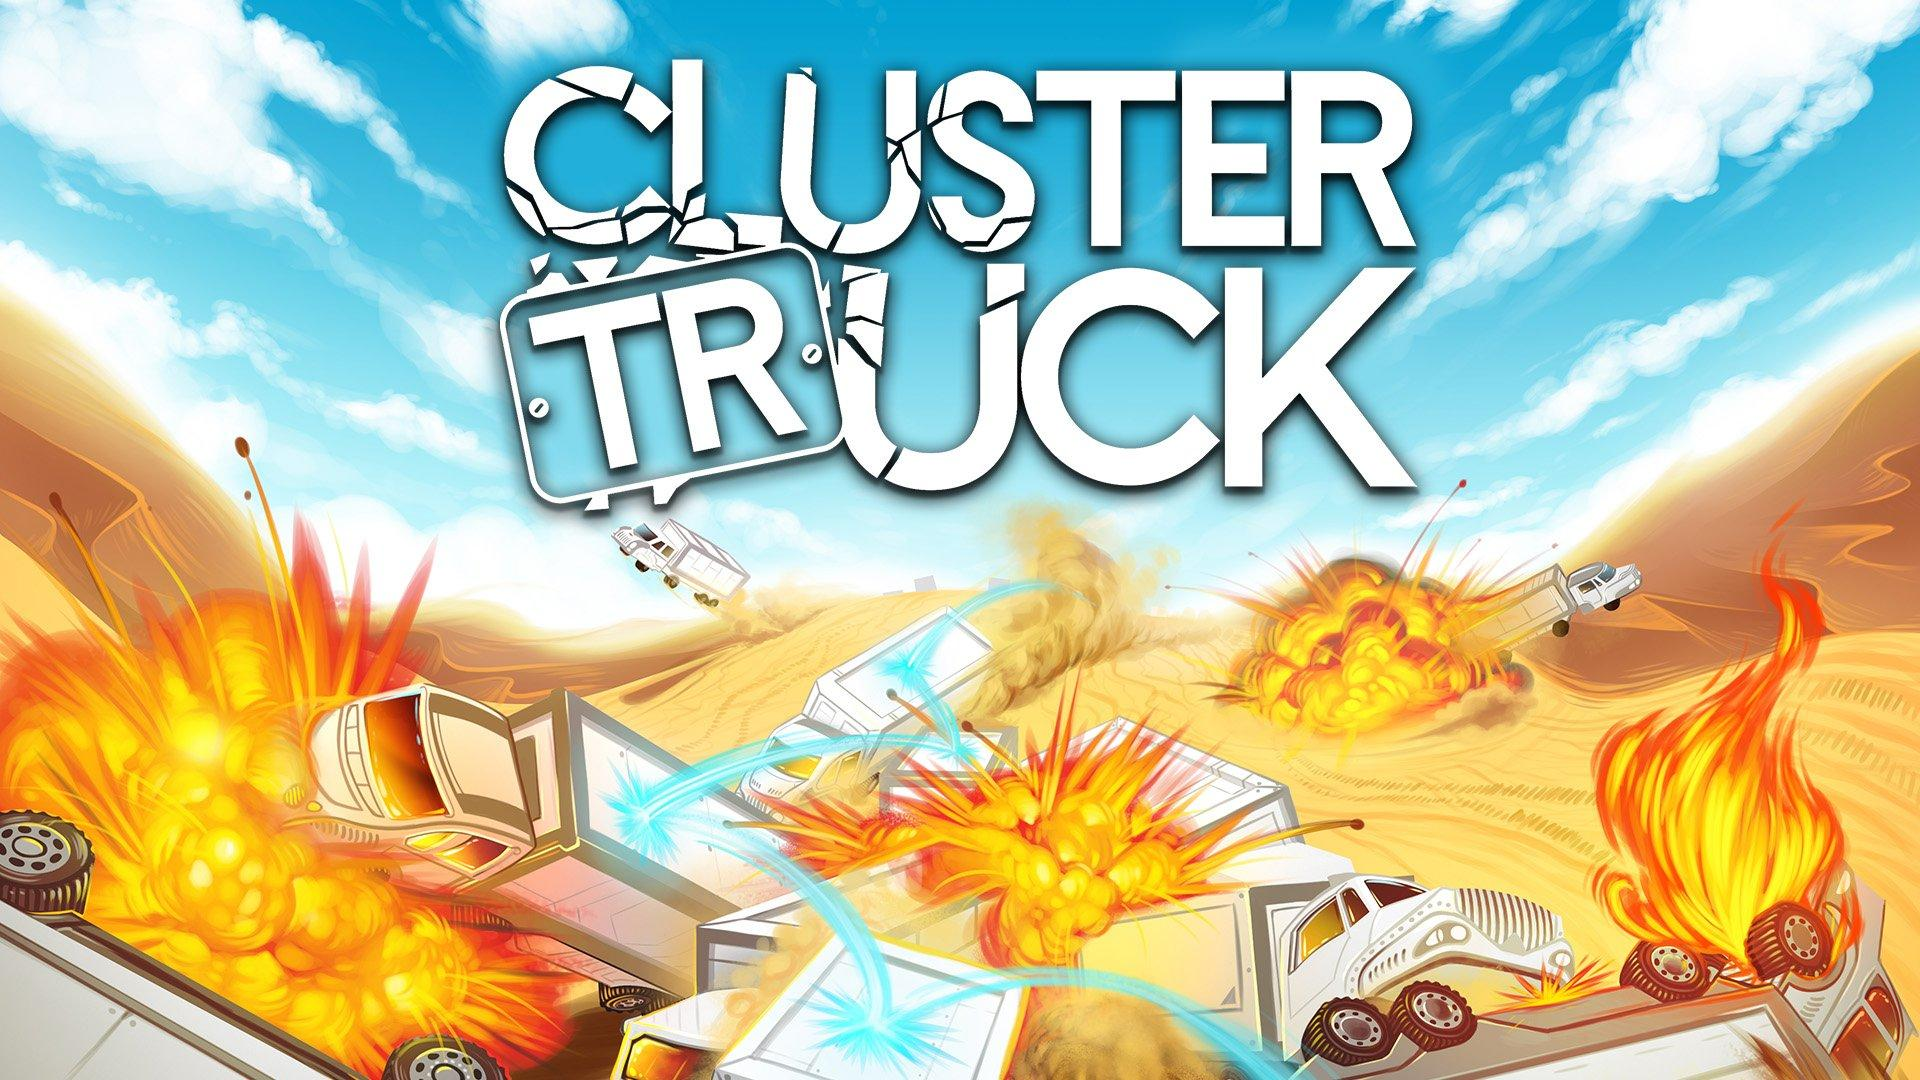 Clustertruck download for android